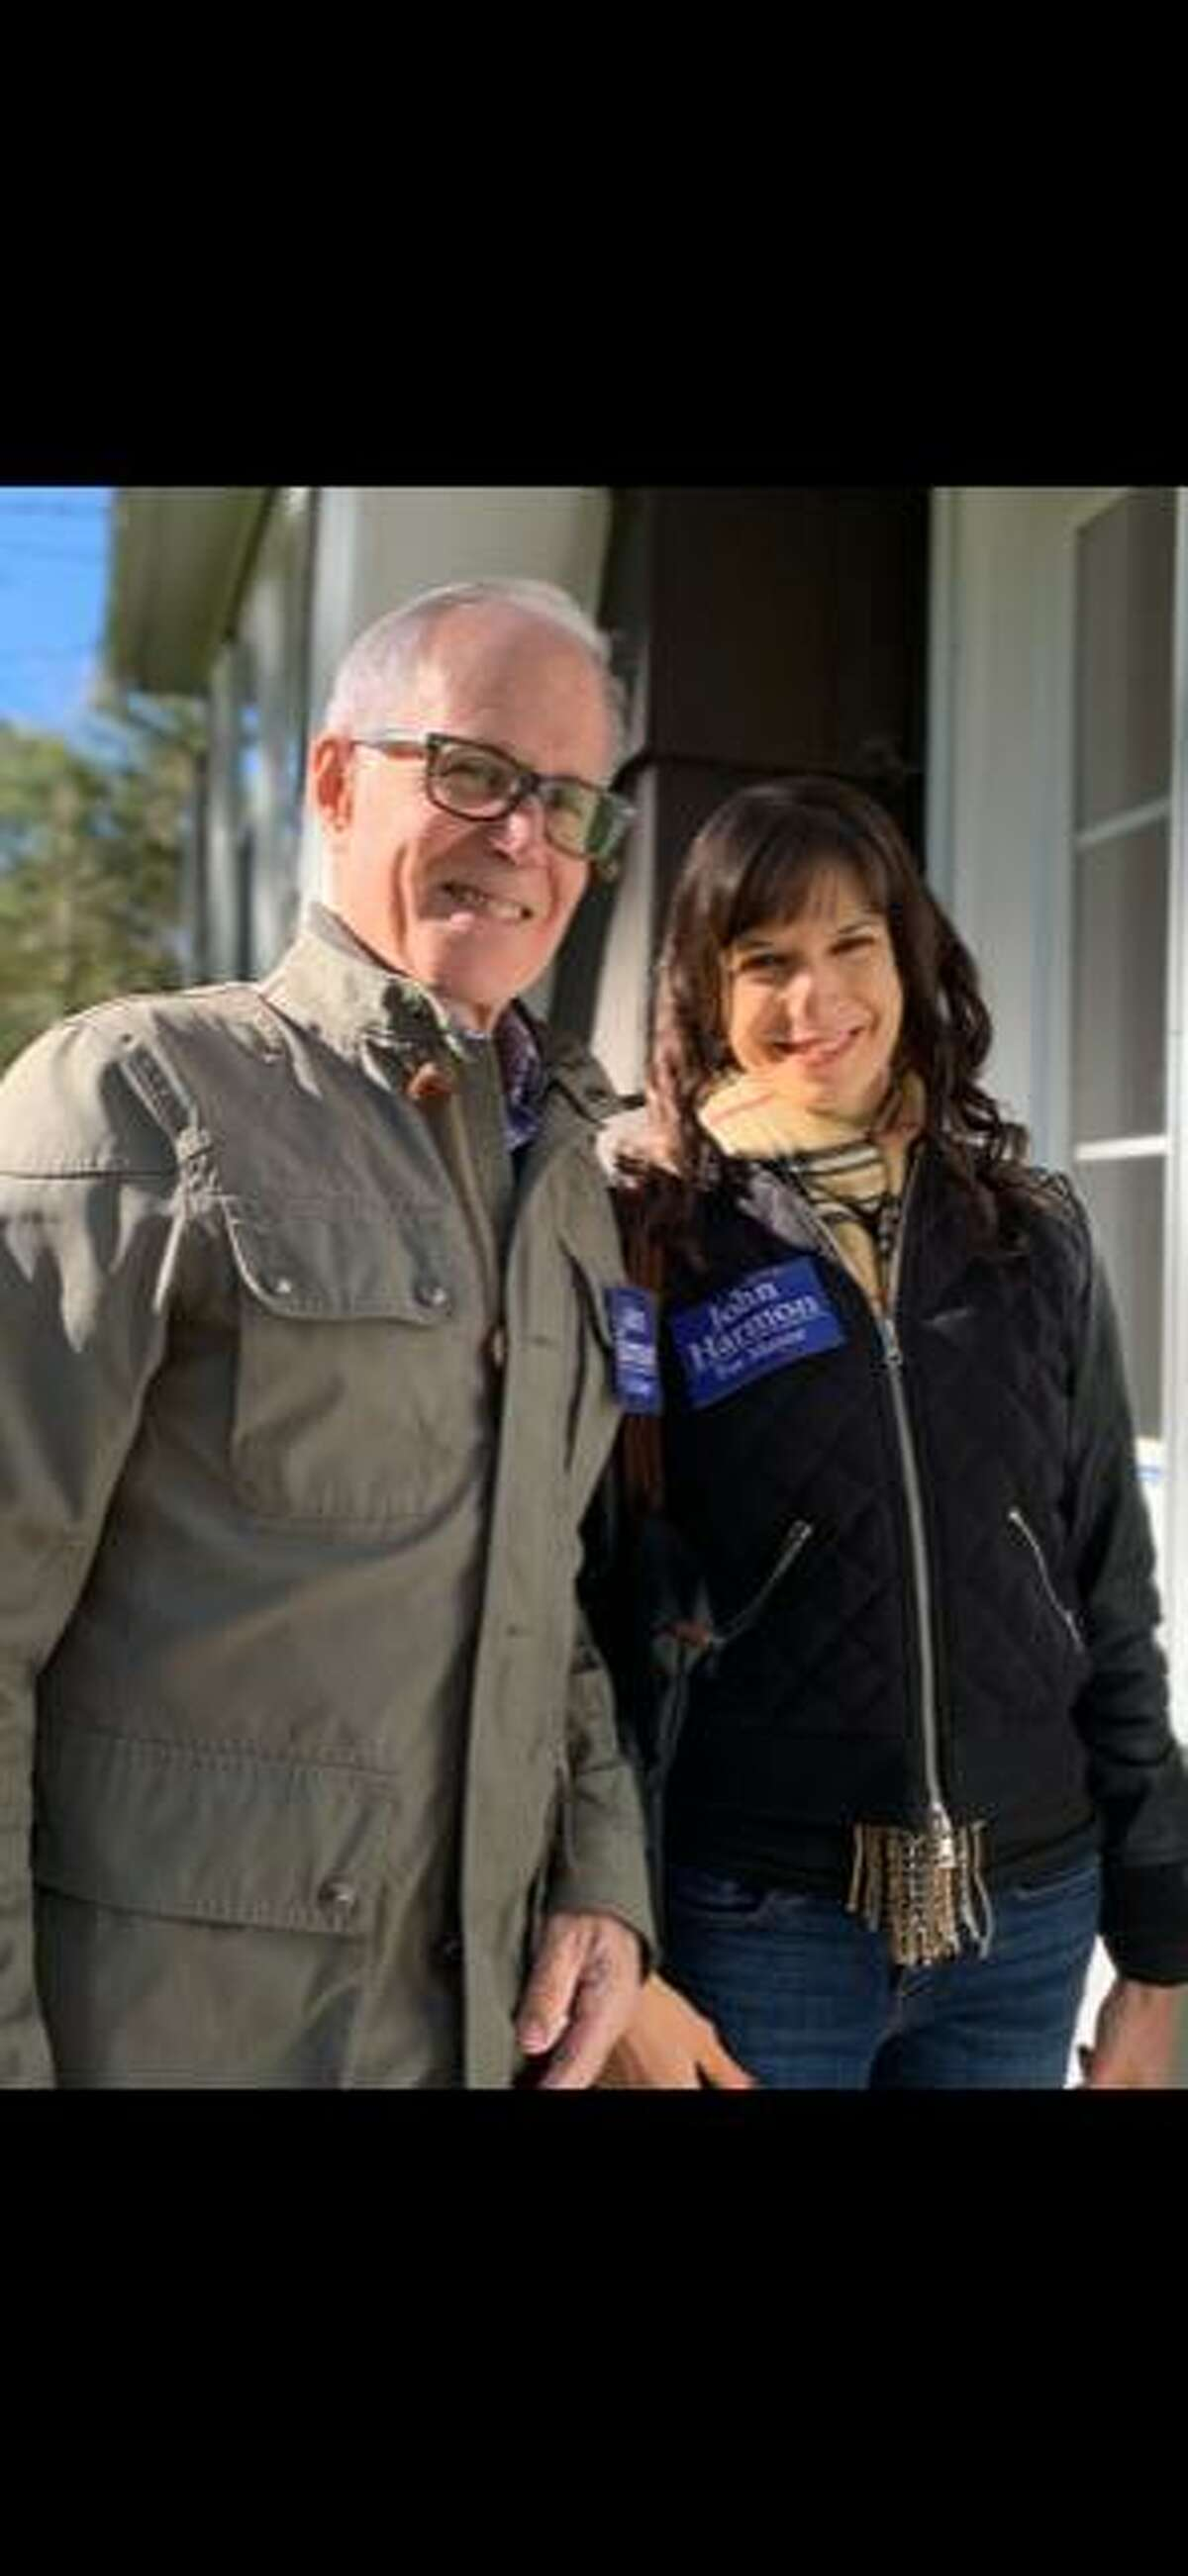 Democratic mayor candidate John Harmon and his daughter, Gail, were door knocking and placing yard signs this past weekend.